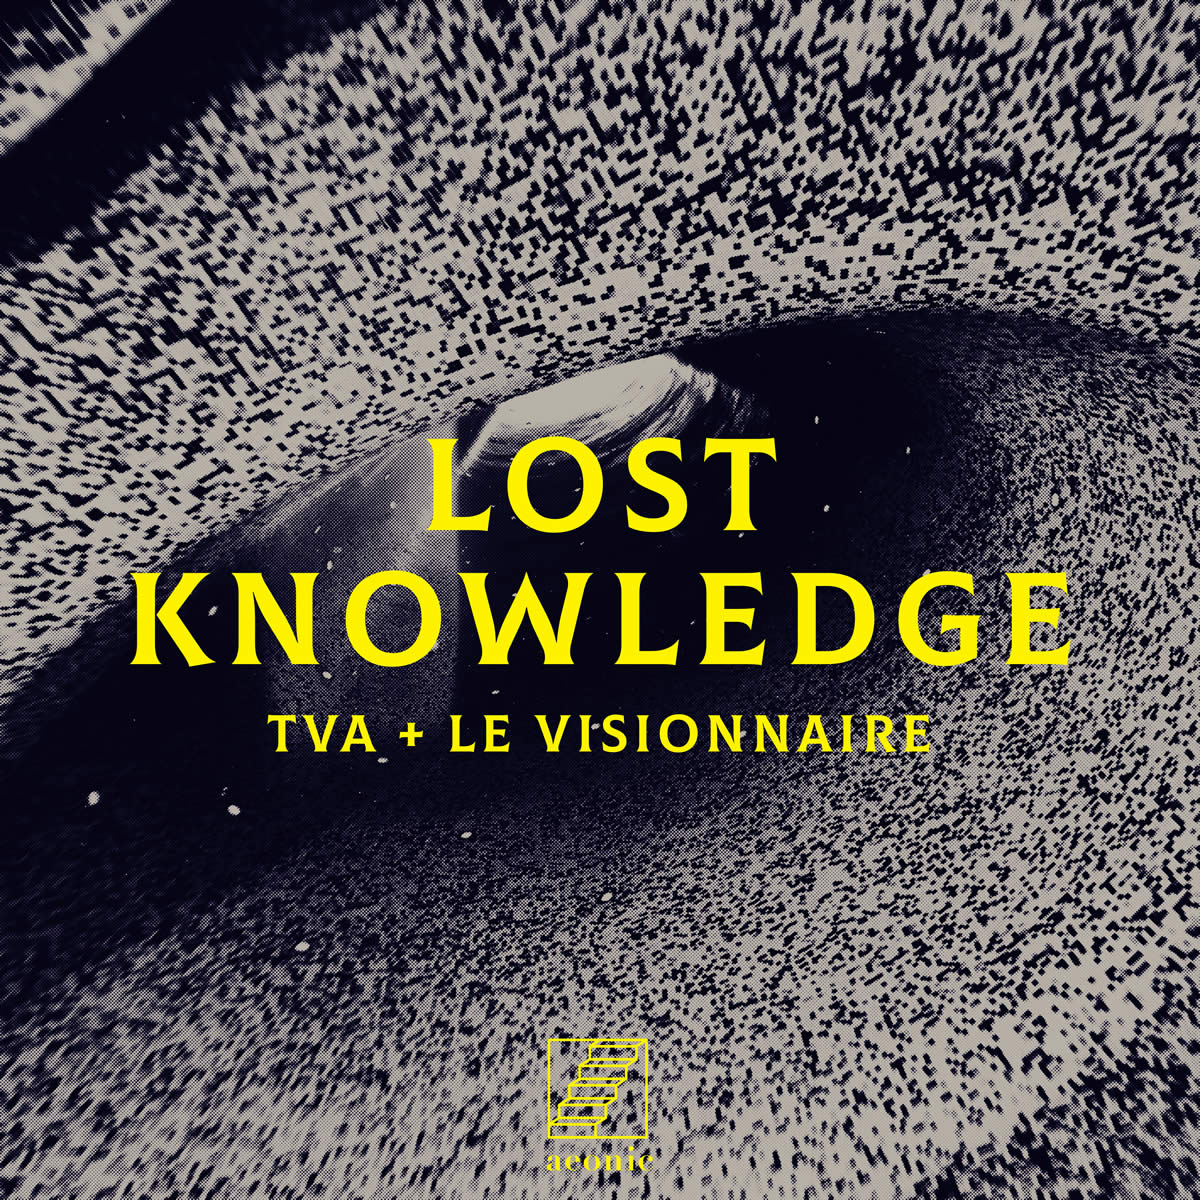 TVA + le visionnaire - Lost Knowledge